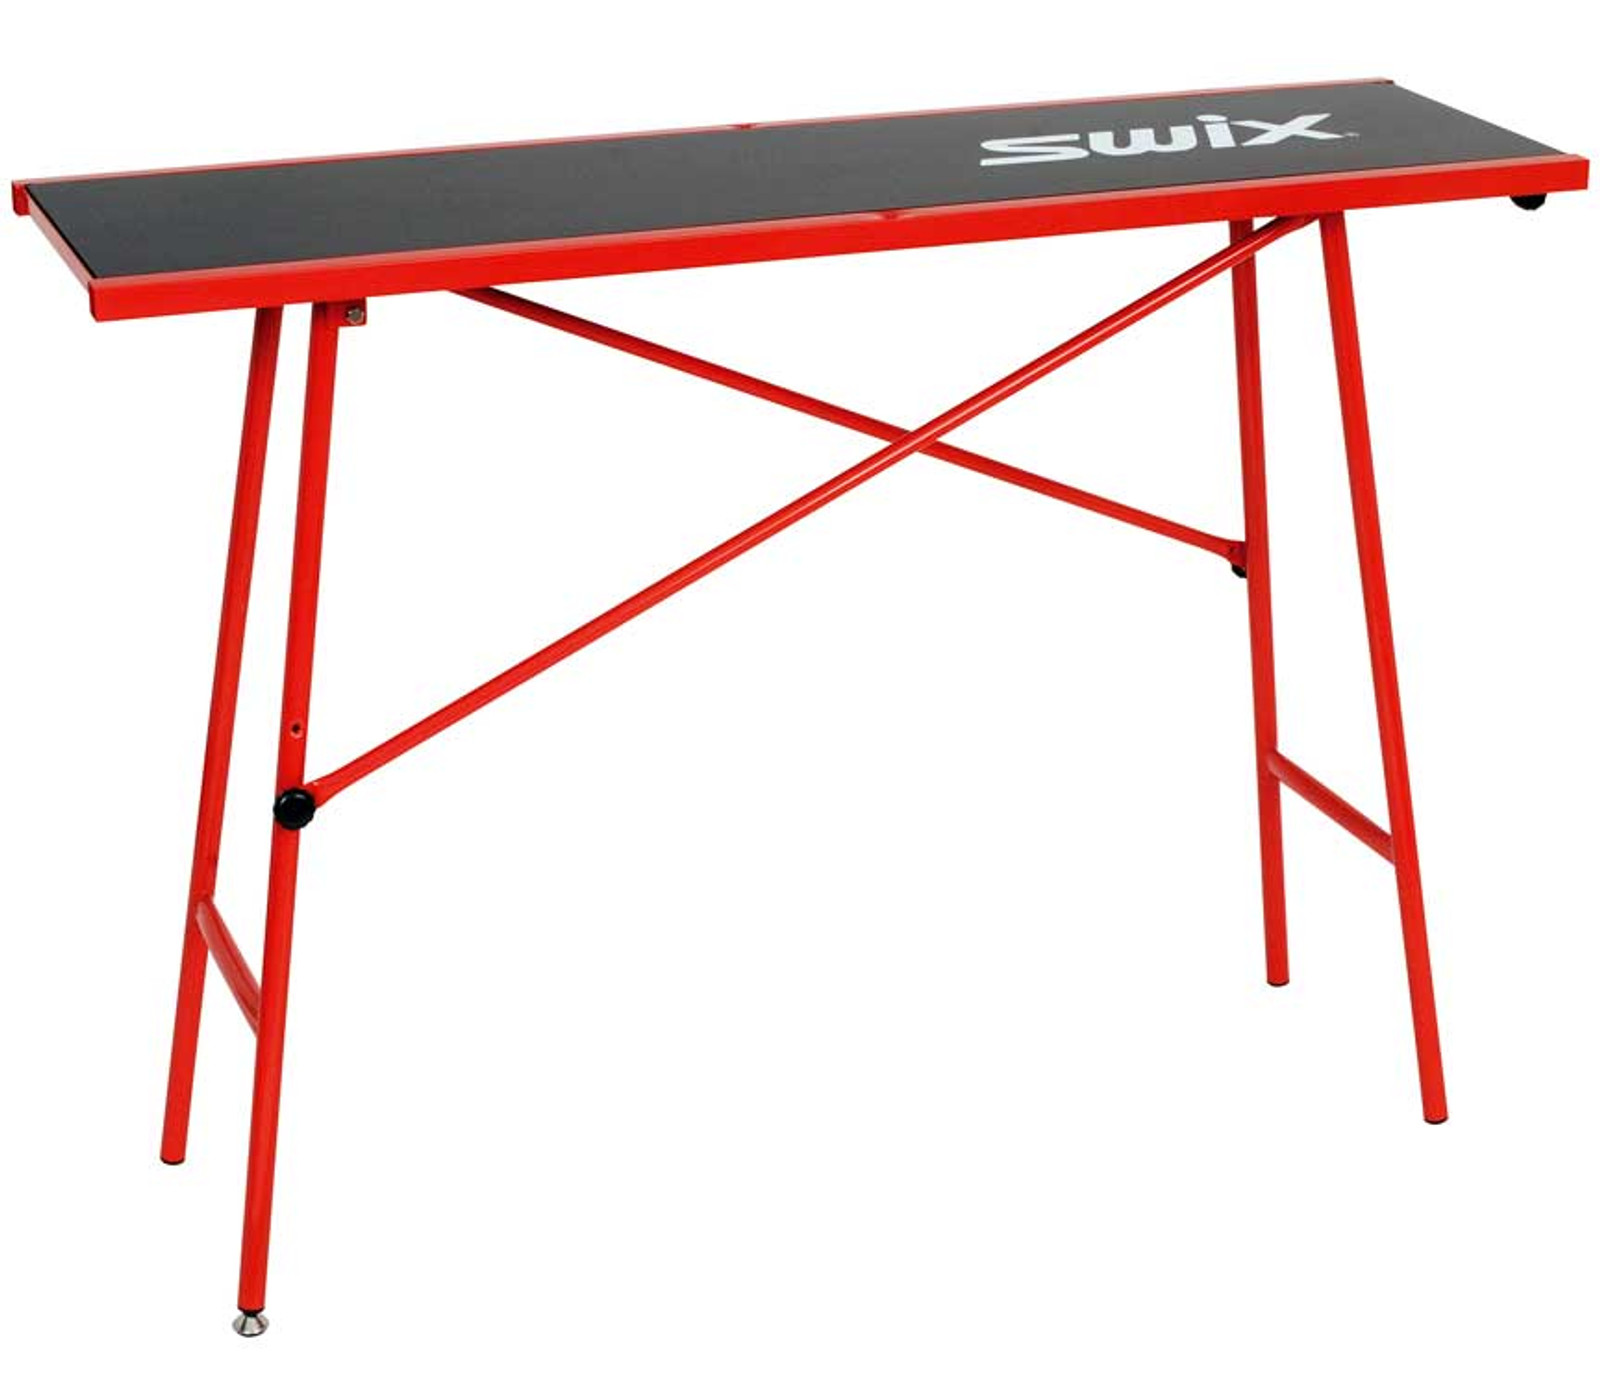 Swix Compact Table - T75W